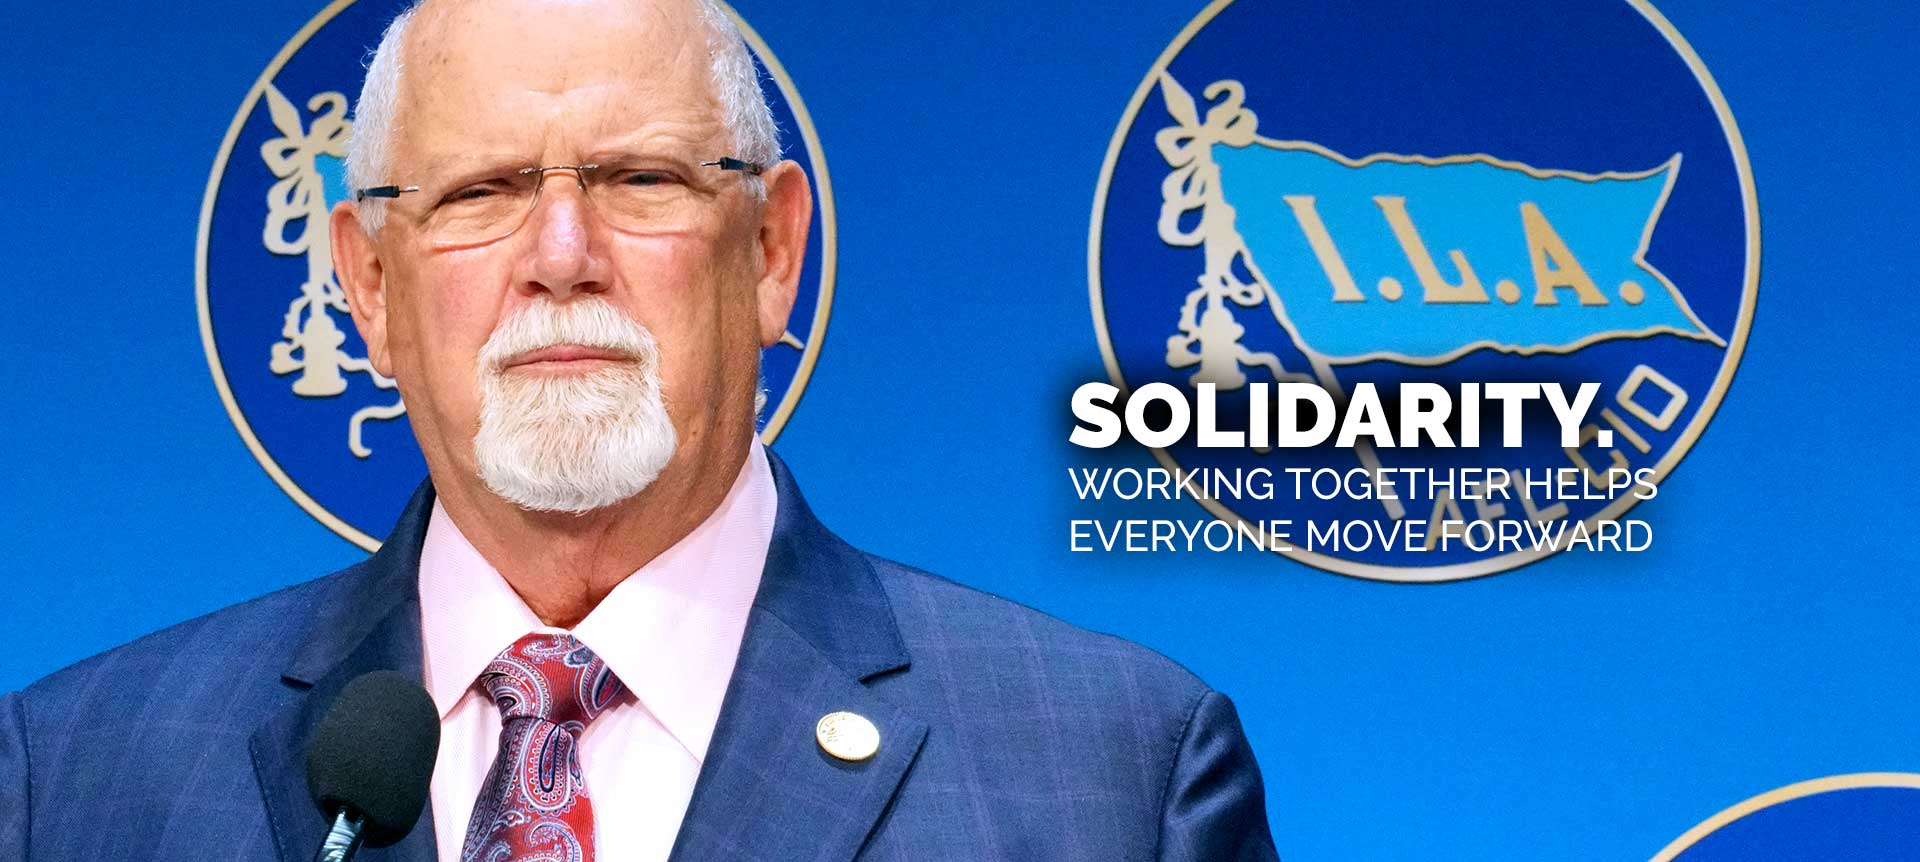 ILA Union: Solidarity with Harold Daggett